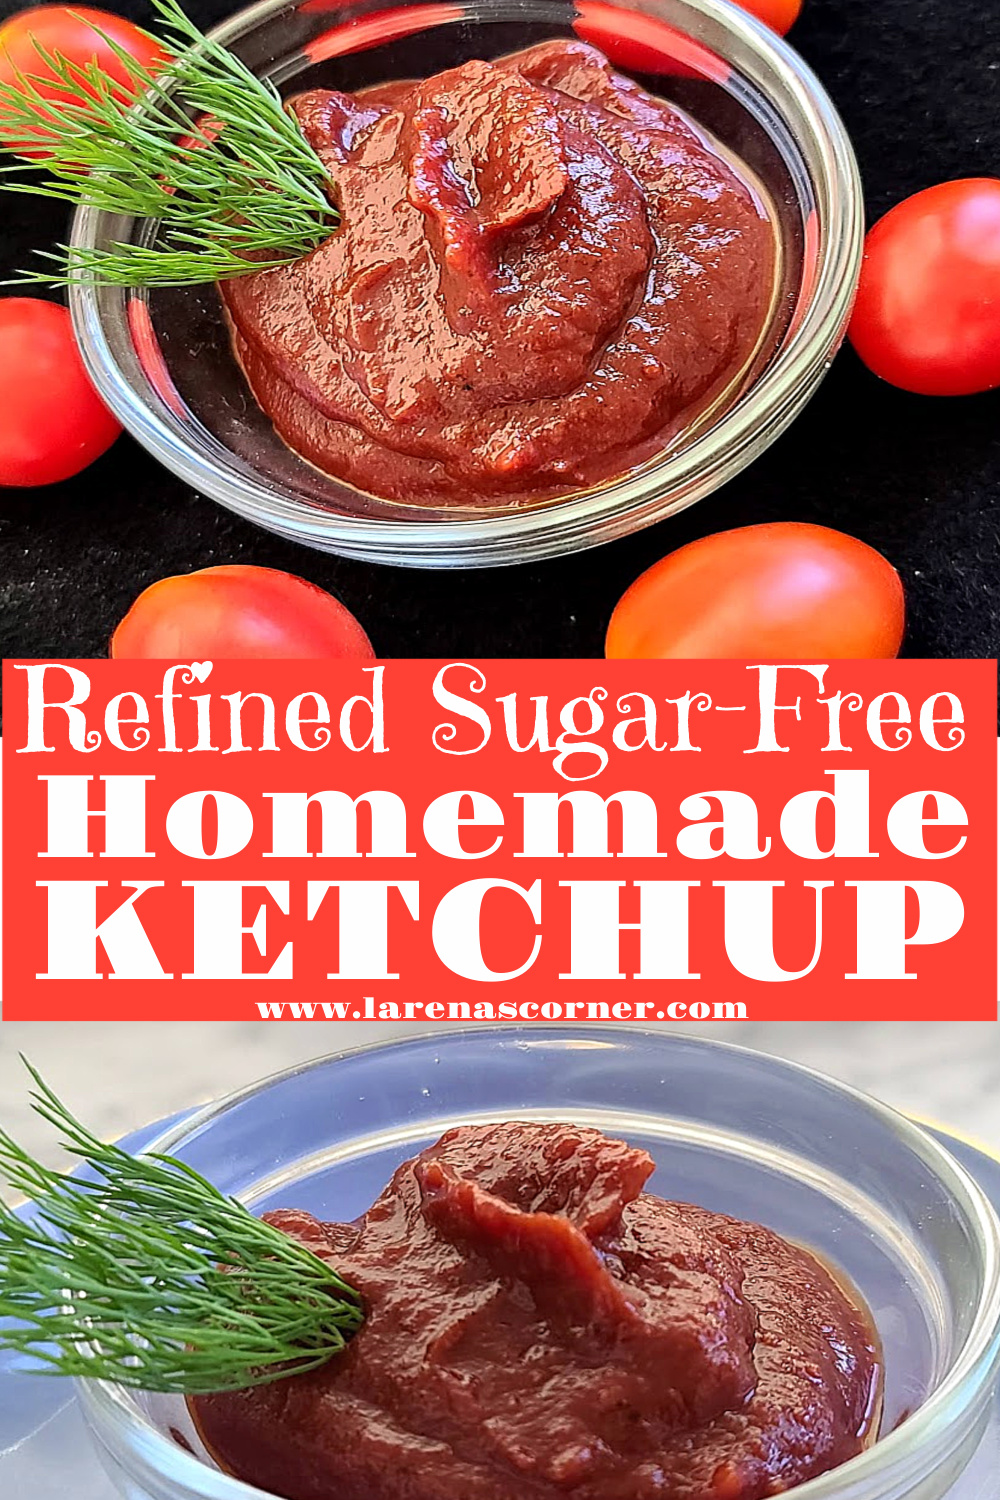 Refined Sugar-Free Homemade Ketchup. Two pictures. One of Ketchup in a bowl on a blue plate. One of a bowl of ketchup surrounded by tomatoes.